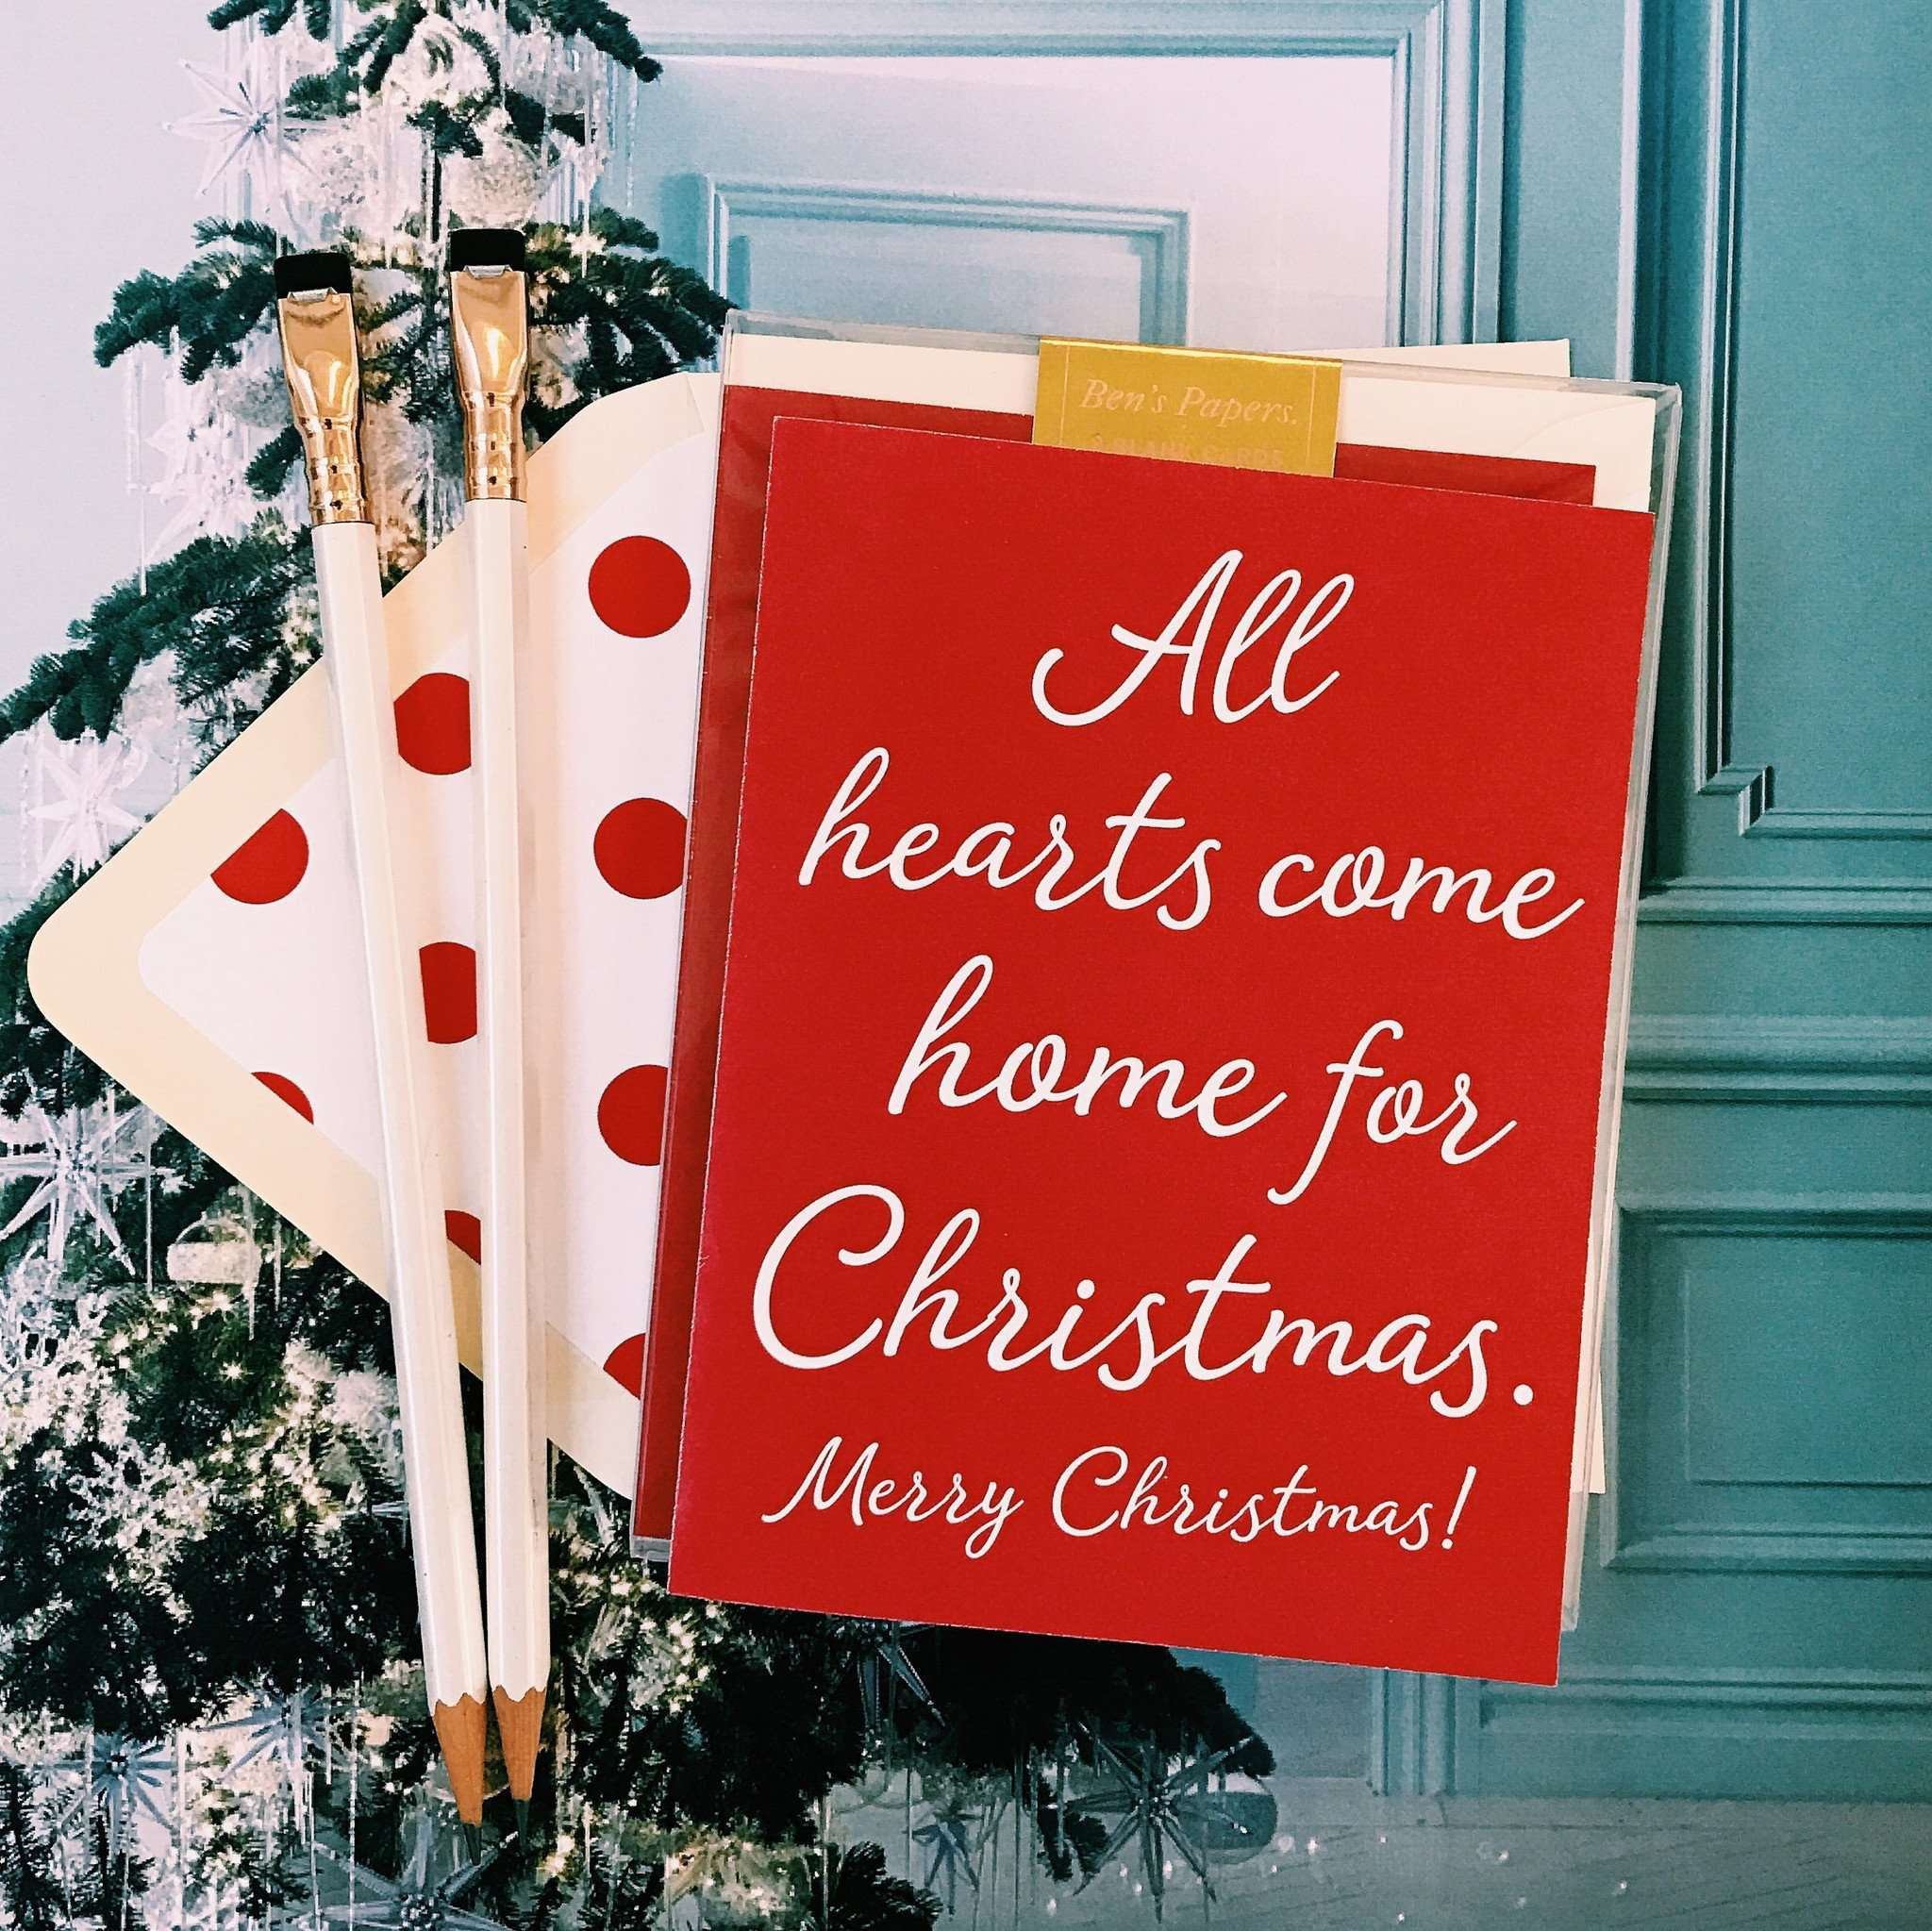 Bens papers all hearts come home for christmas greeting card bens papers all hearts come home for christmas greeting card single or boxed set kristyandbryce Choice Image